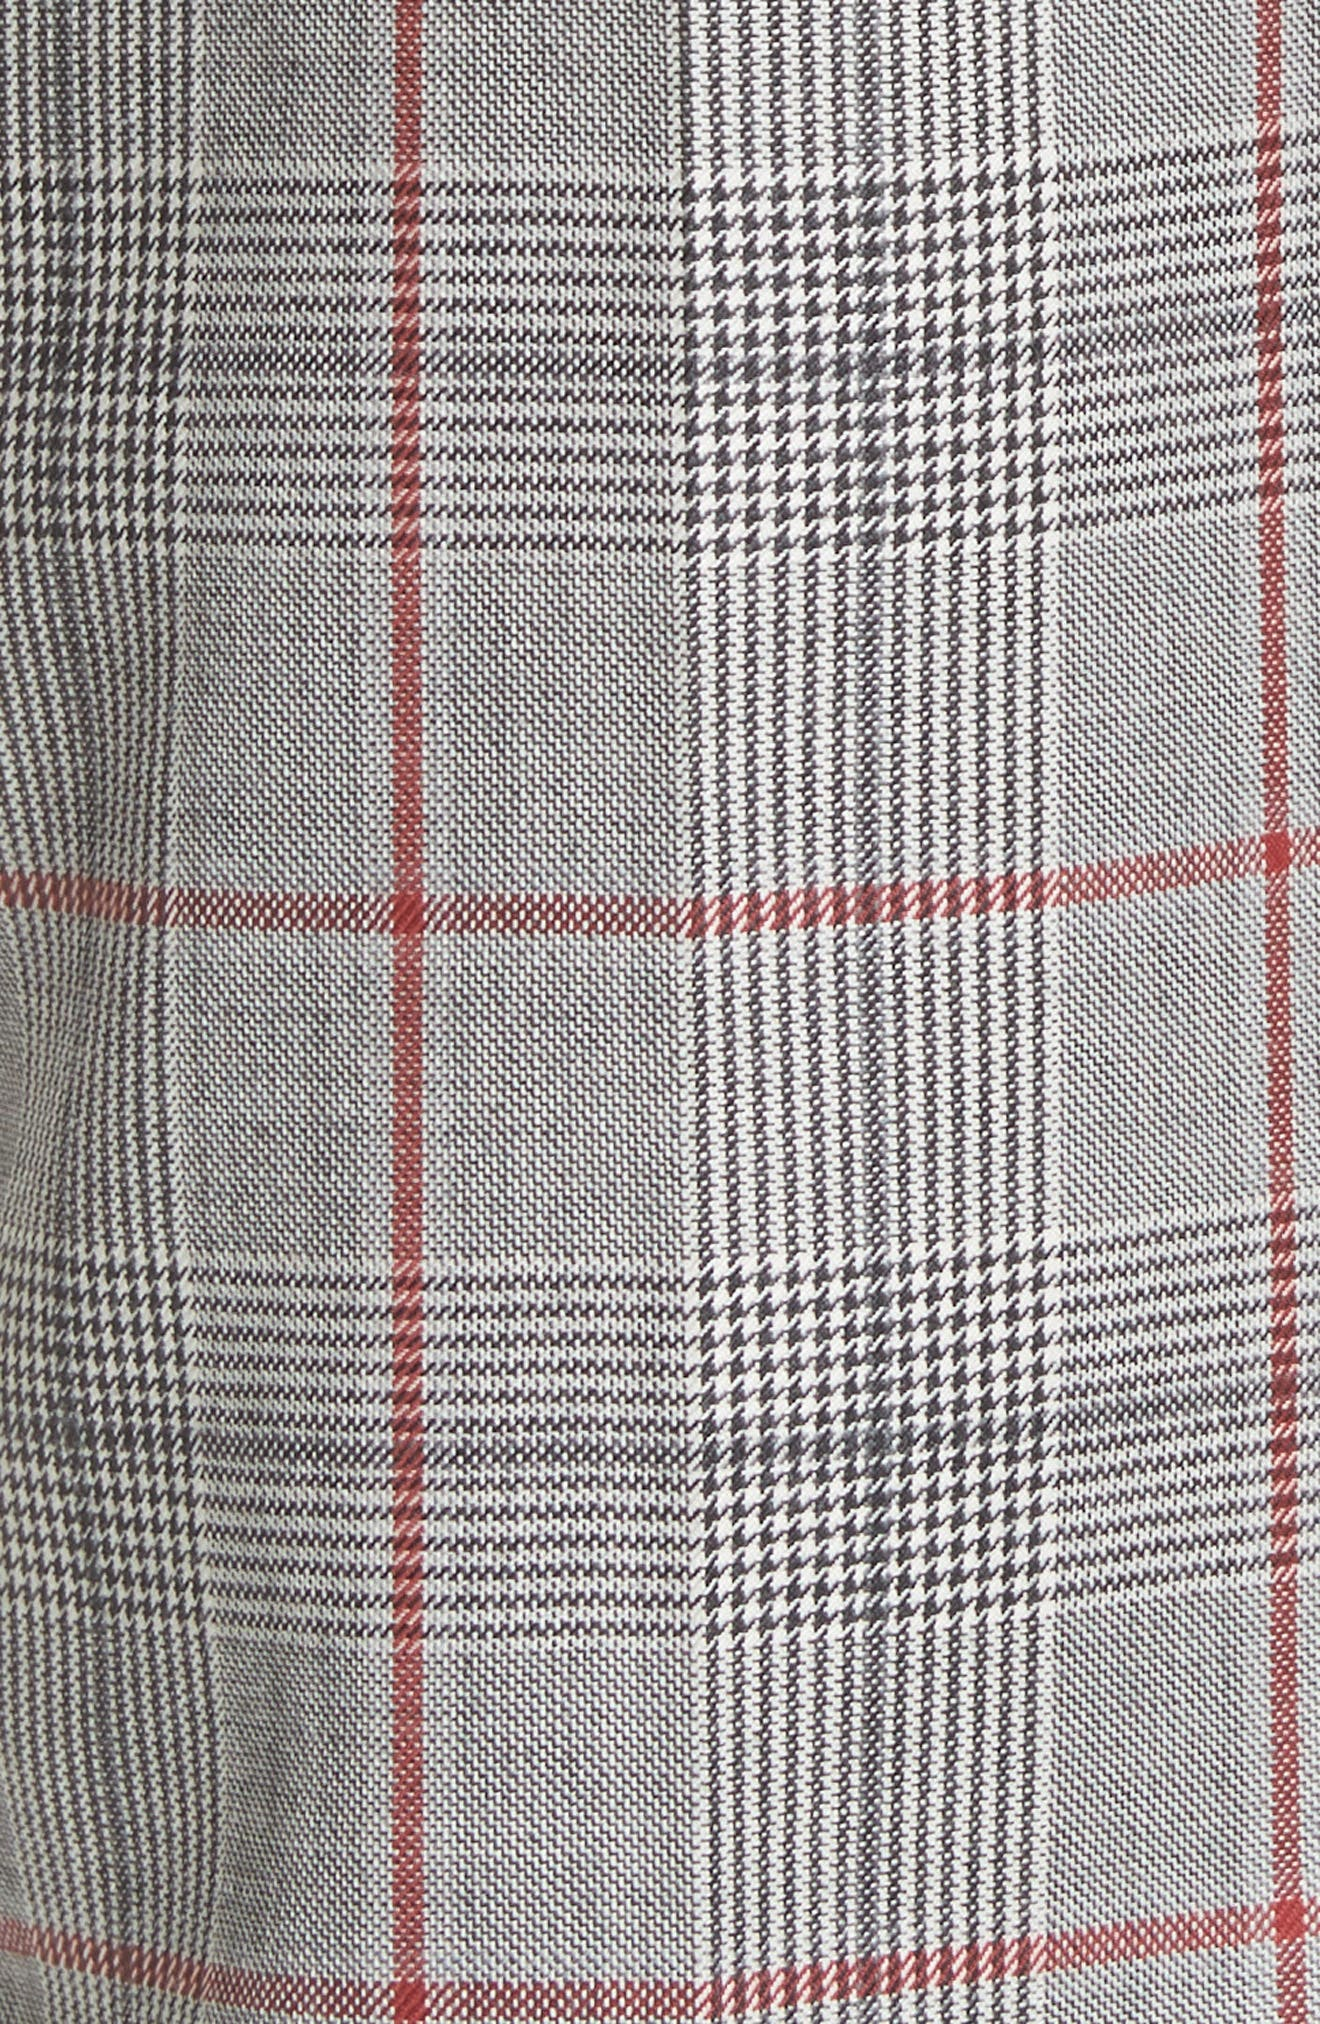 Side Stripe Plaid Wool Pants,                             Alternate thumbnail 5, color,                             BLACK WHITE GRENADINE